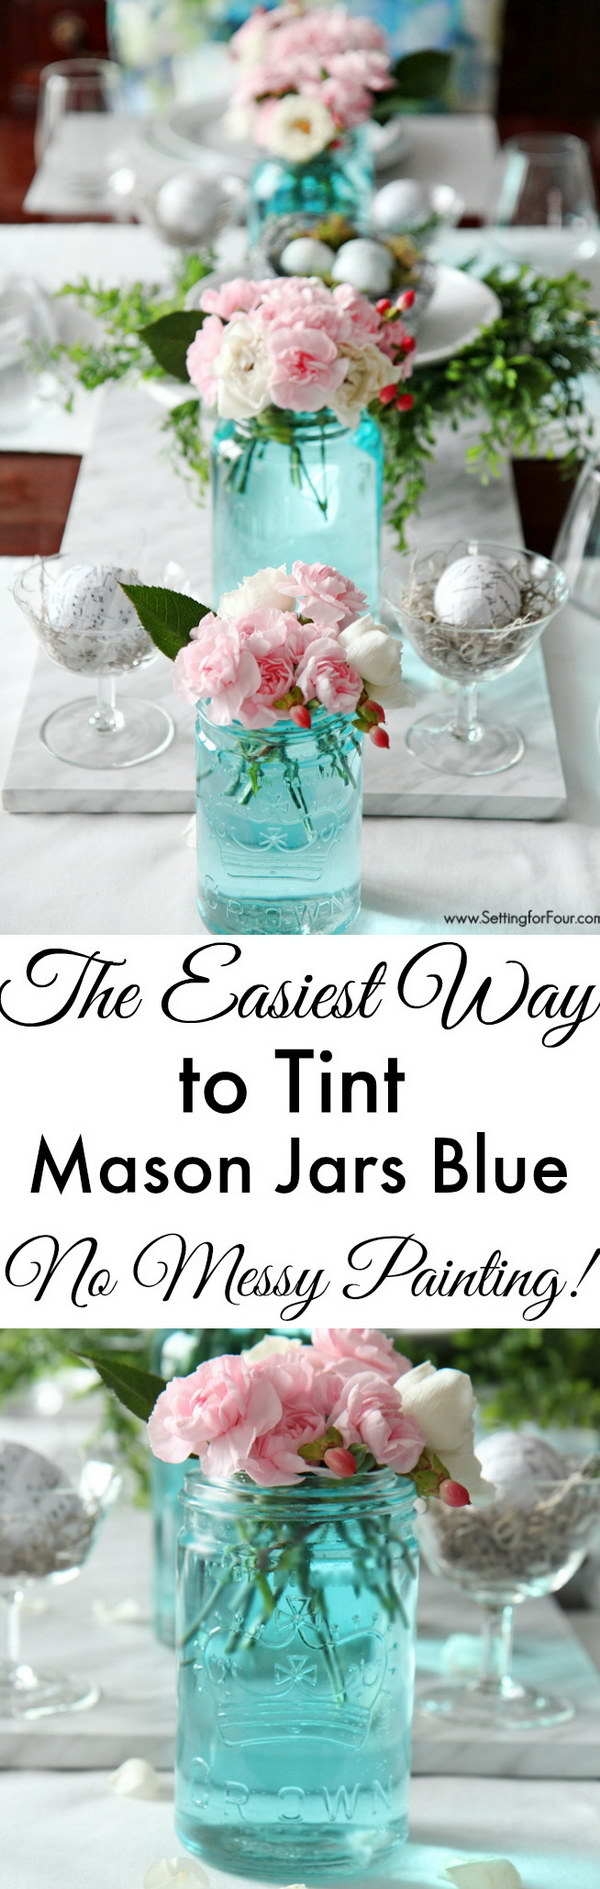 Beautiful Tint Mason Jars Blue